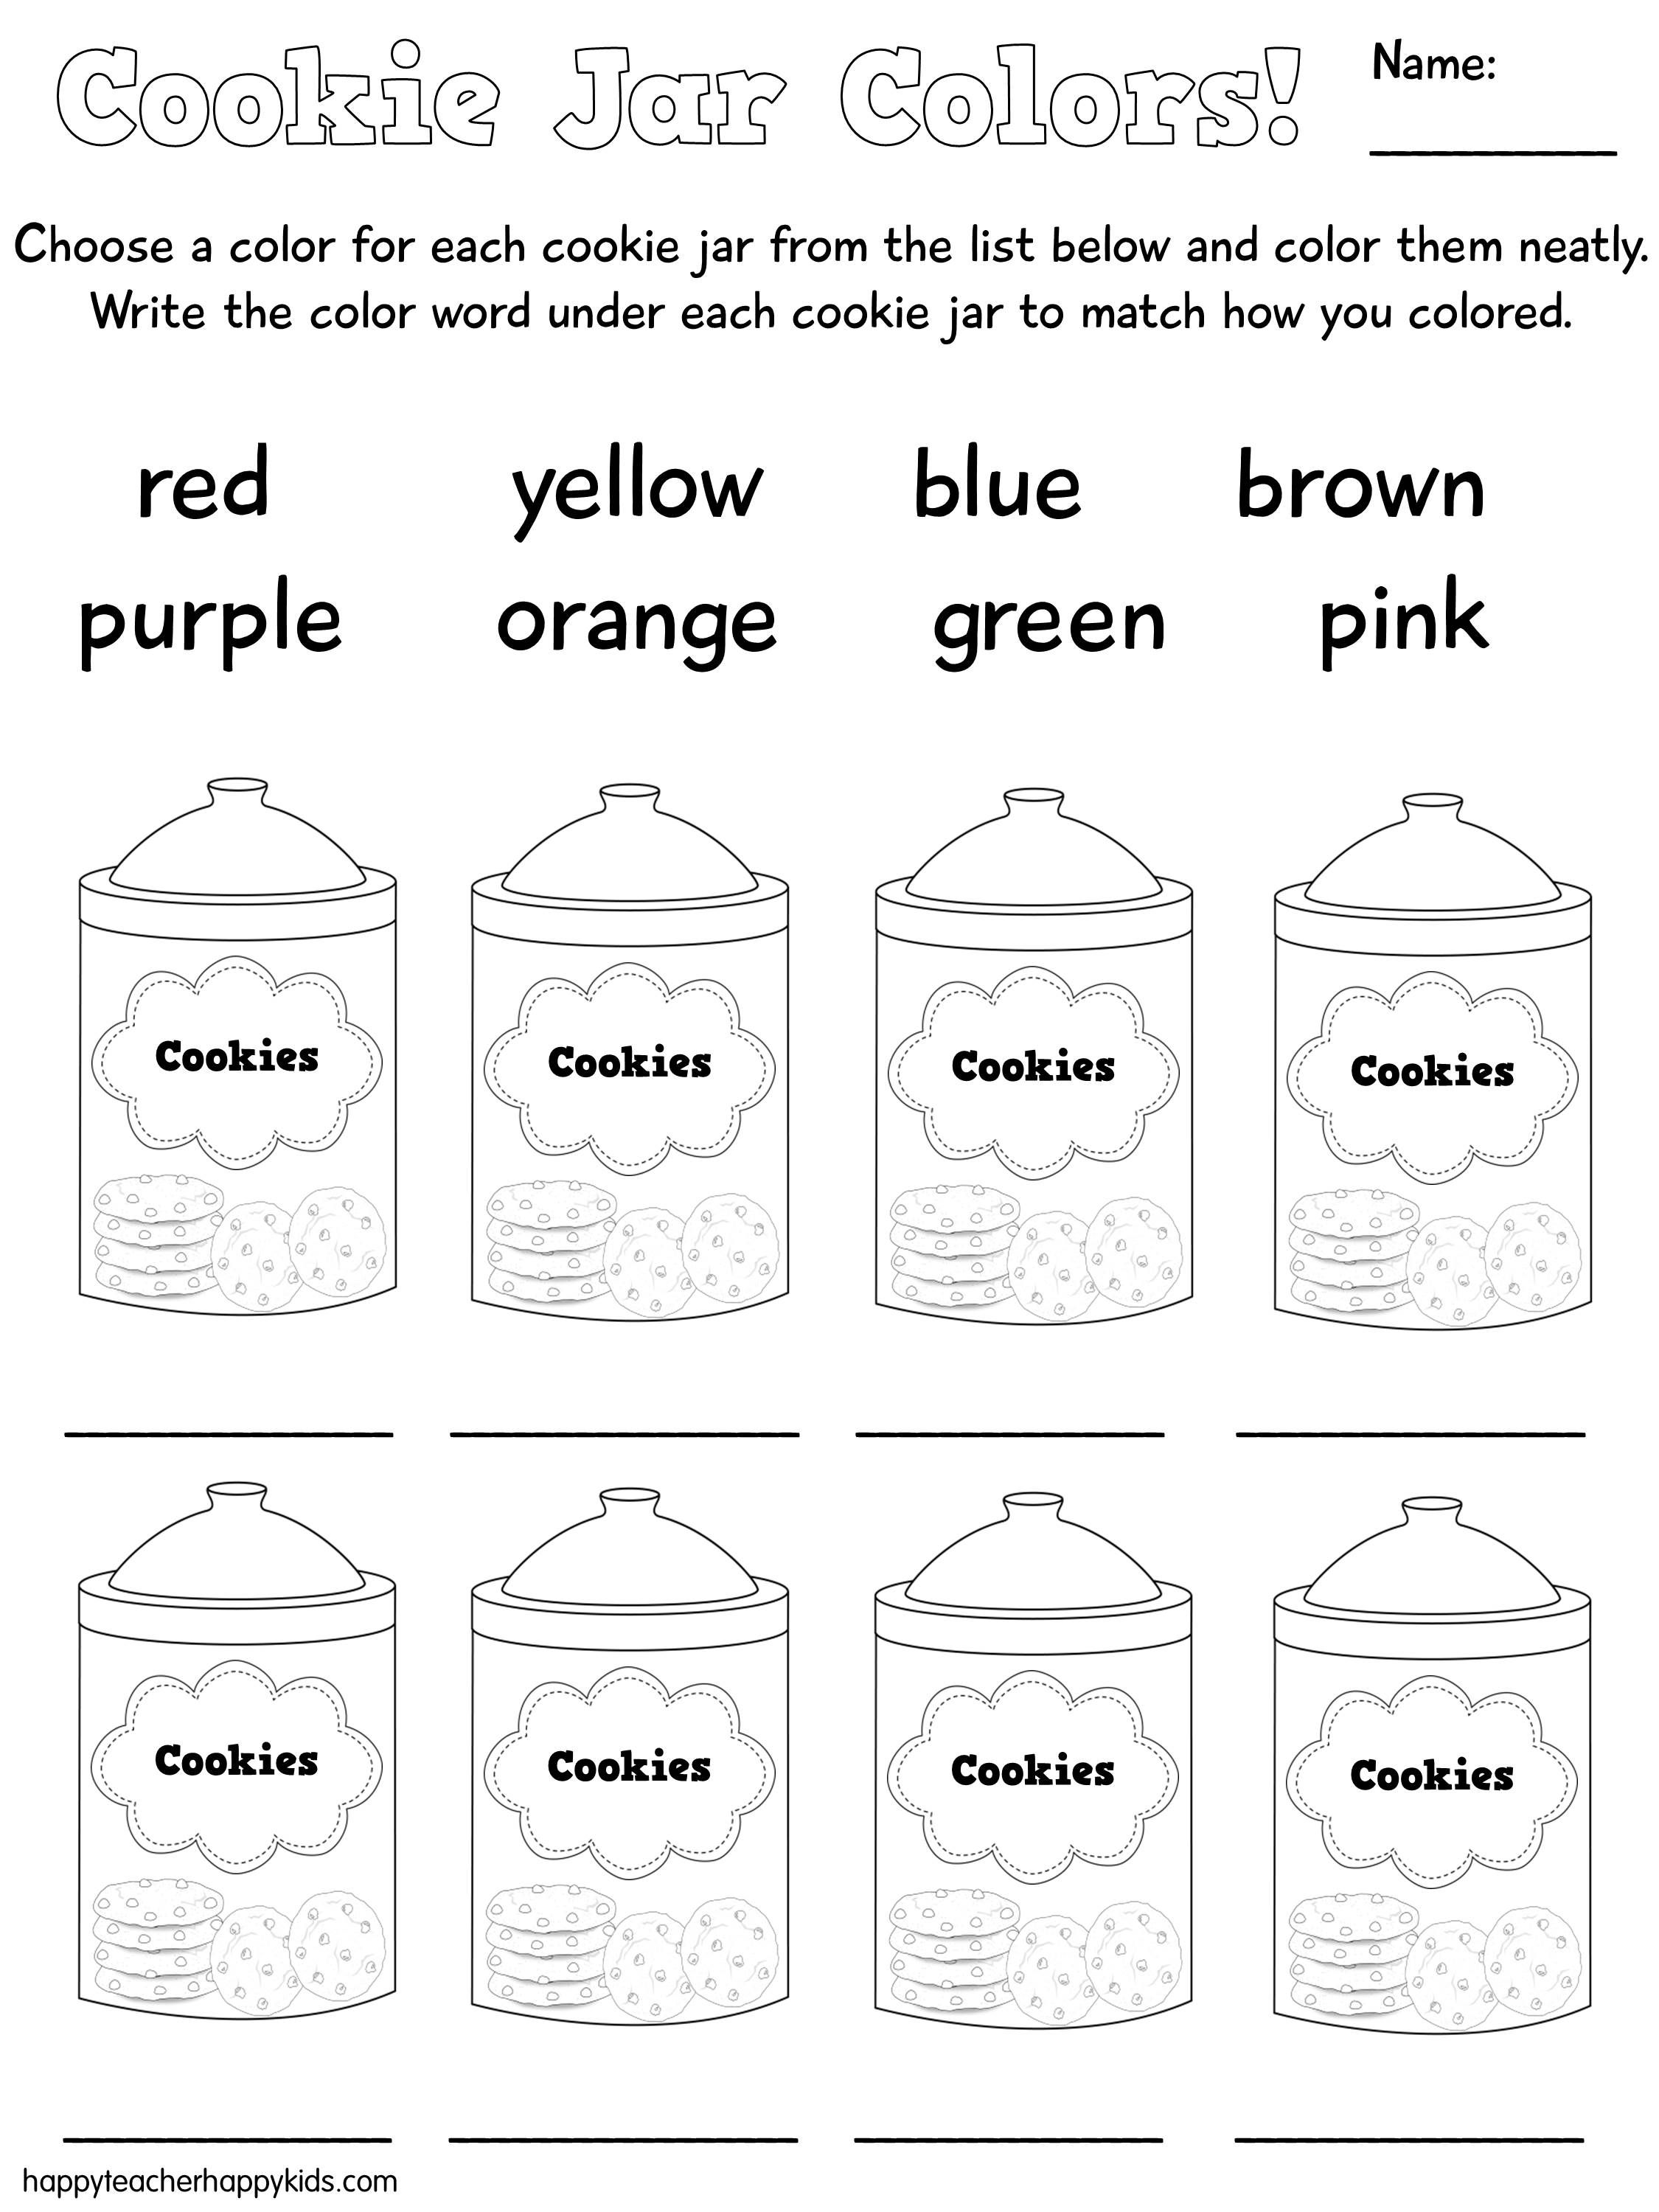 Back To School Cookie Jars To Practice Color Words